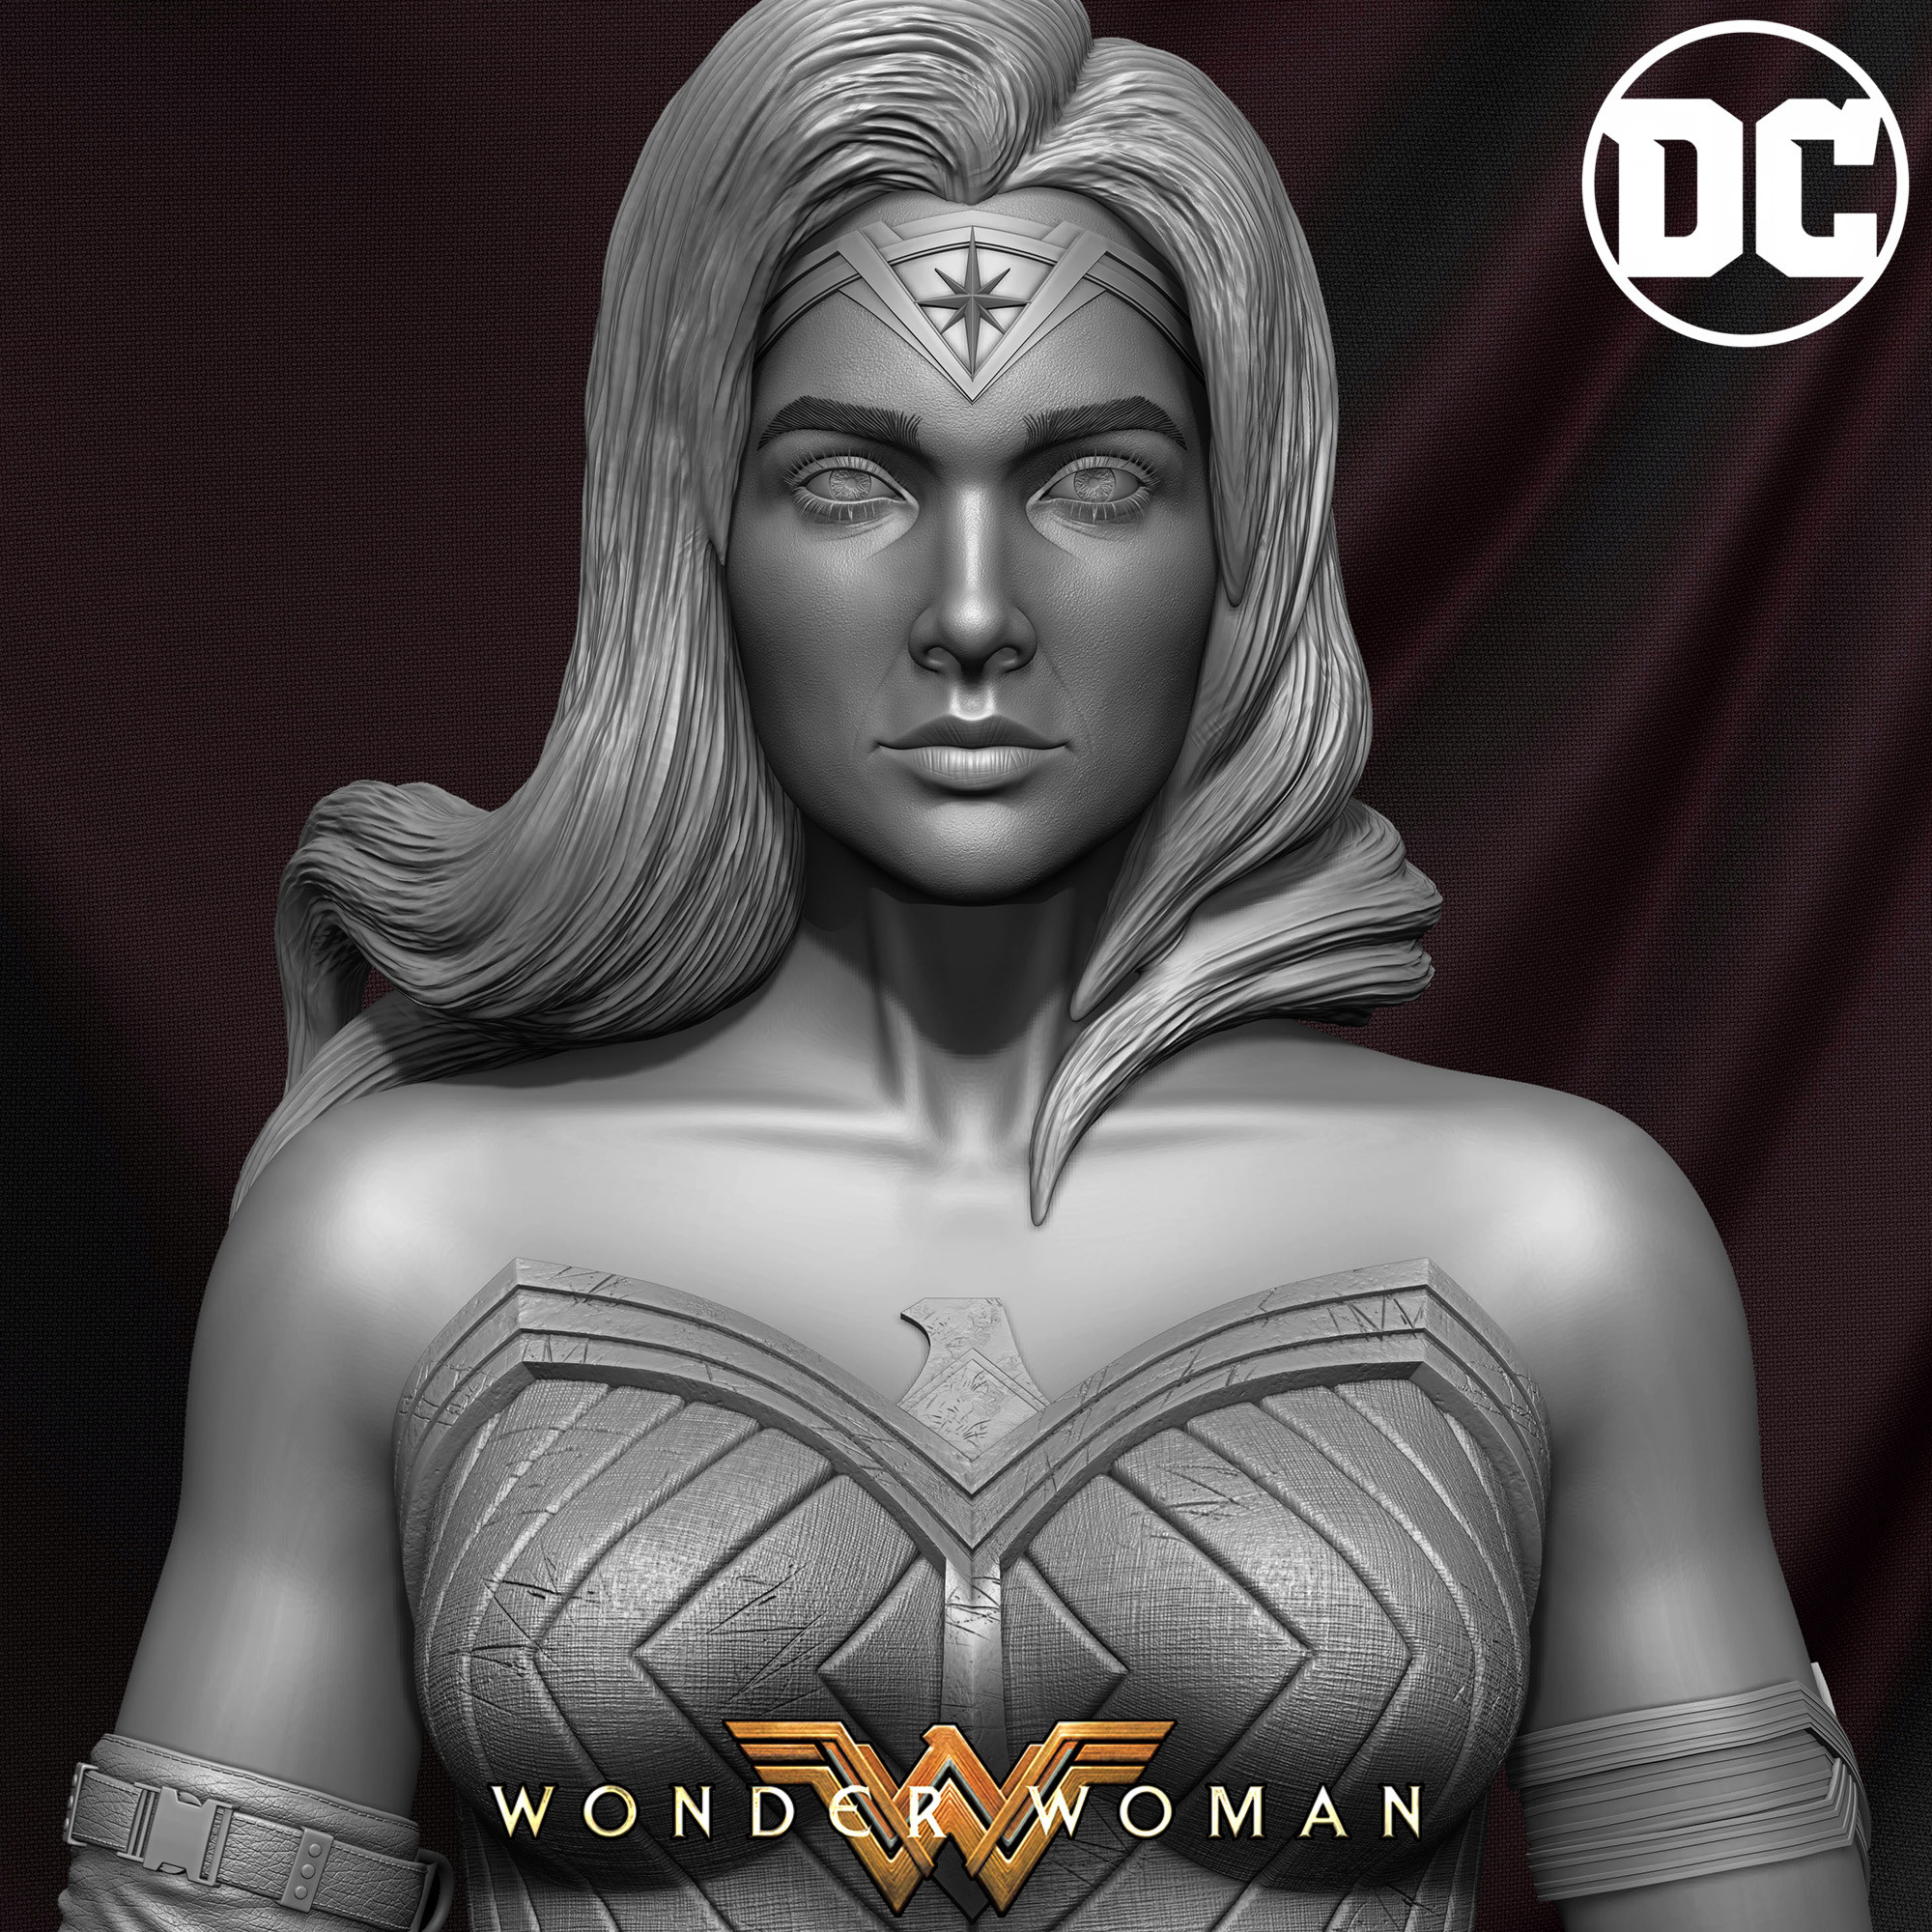 Wonder Woman ZBrush Version, Personal Project (Sculpted By Yacine BRINIS) Set 11